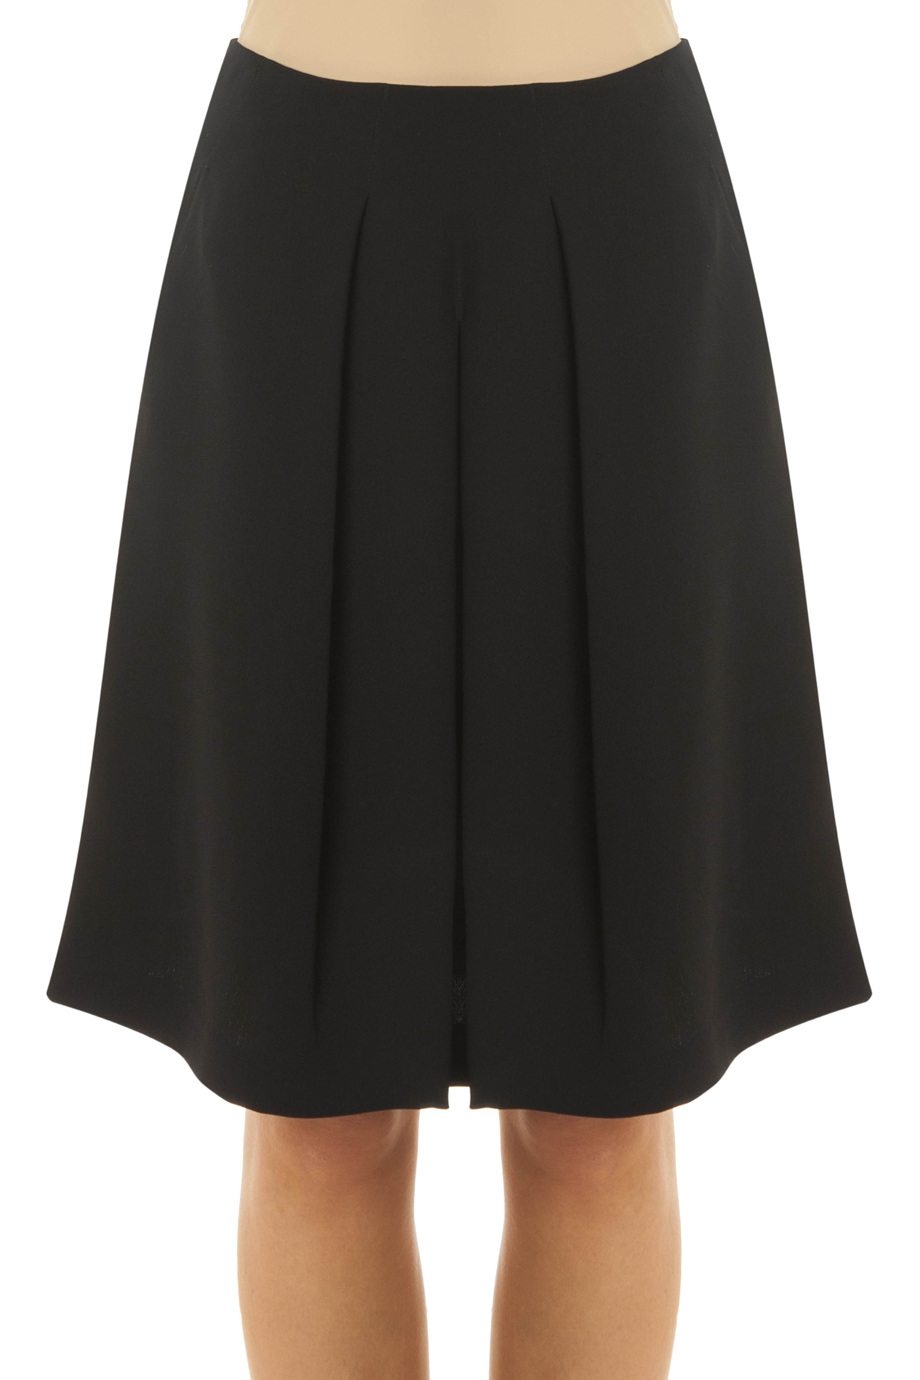 vince pleated skirt in black lyst